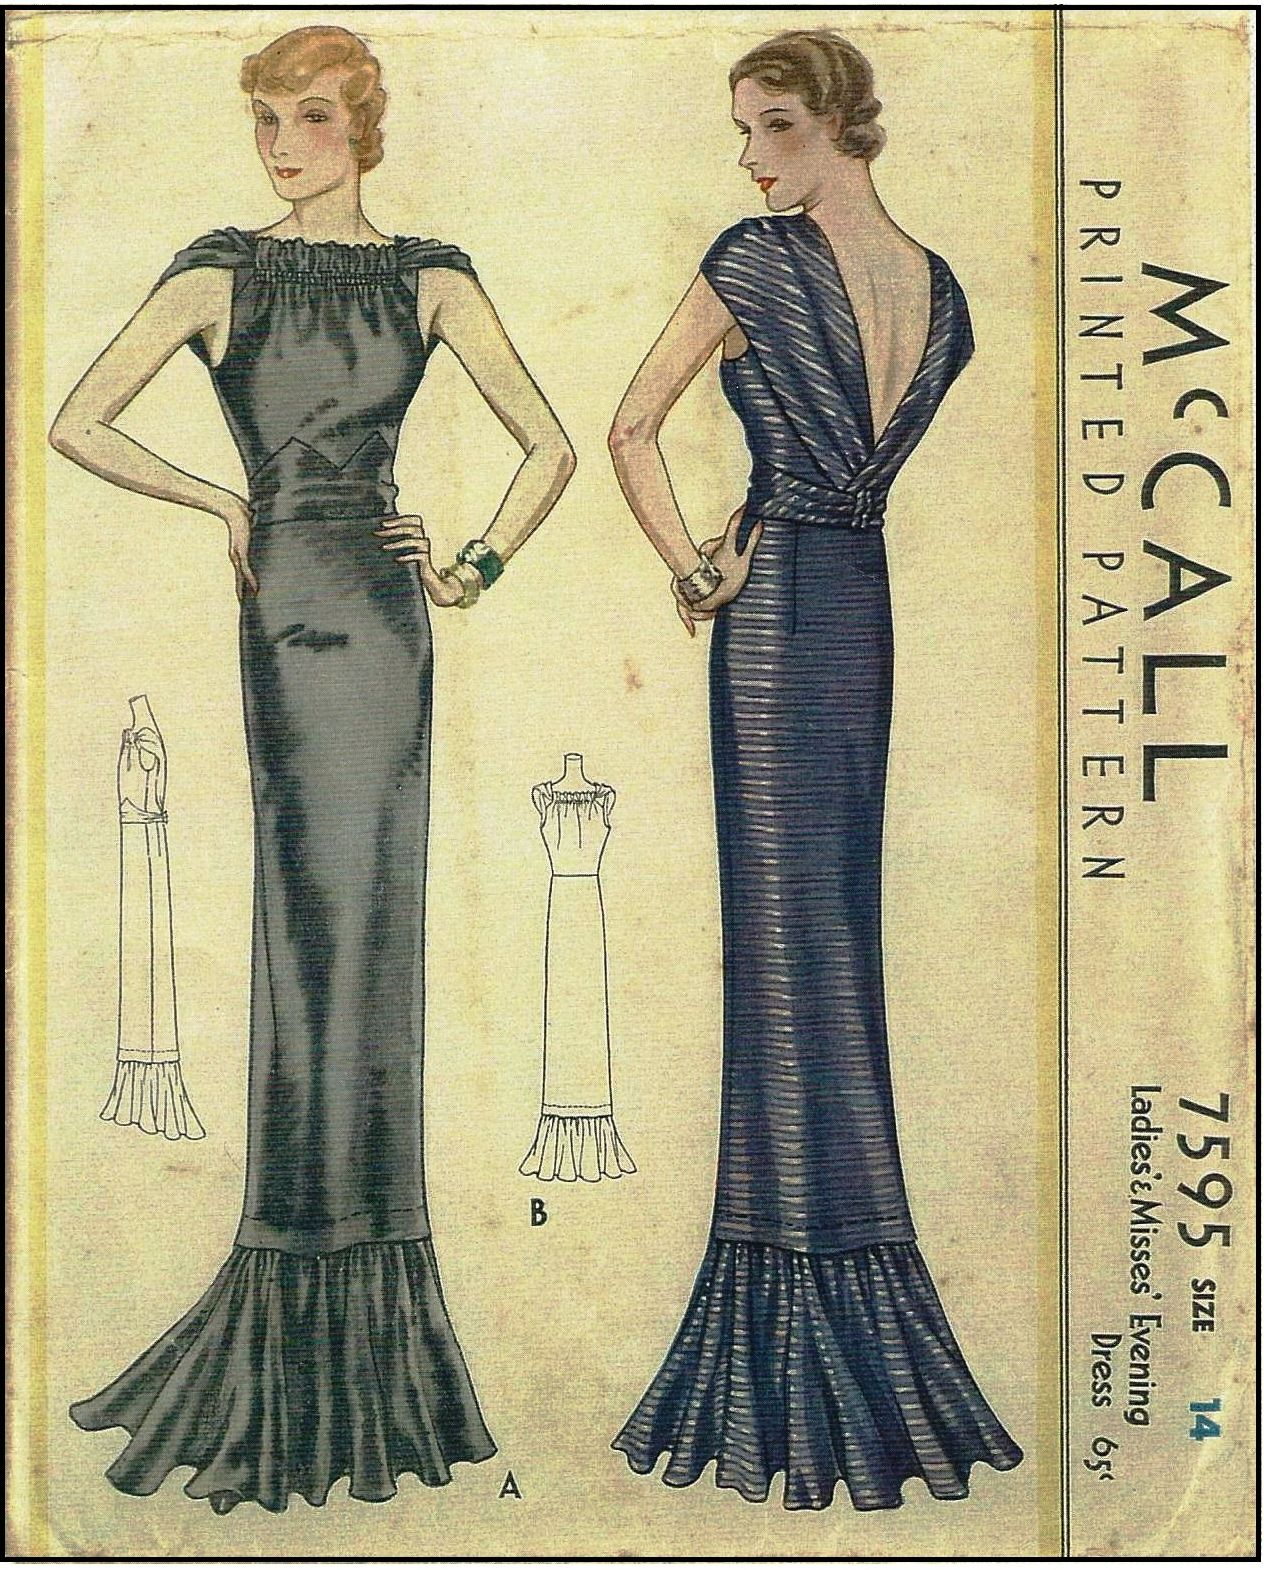 1930s Ladies Evening Gown With Gathered Neckline Etsy Vintage Dress Patterns Vintage Outfits Vintage Sewing Patterns [ 1570 x 1264 Pixel ]